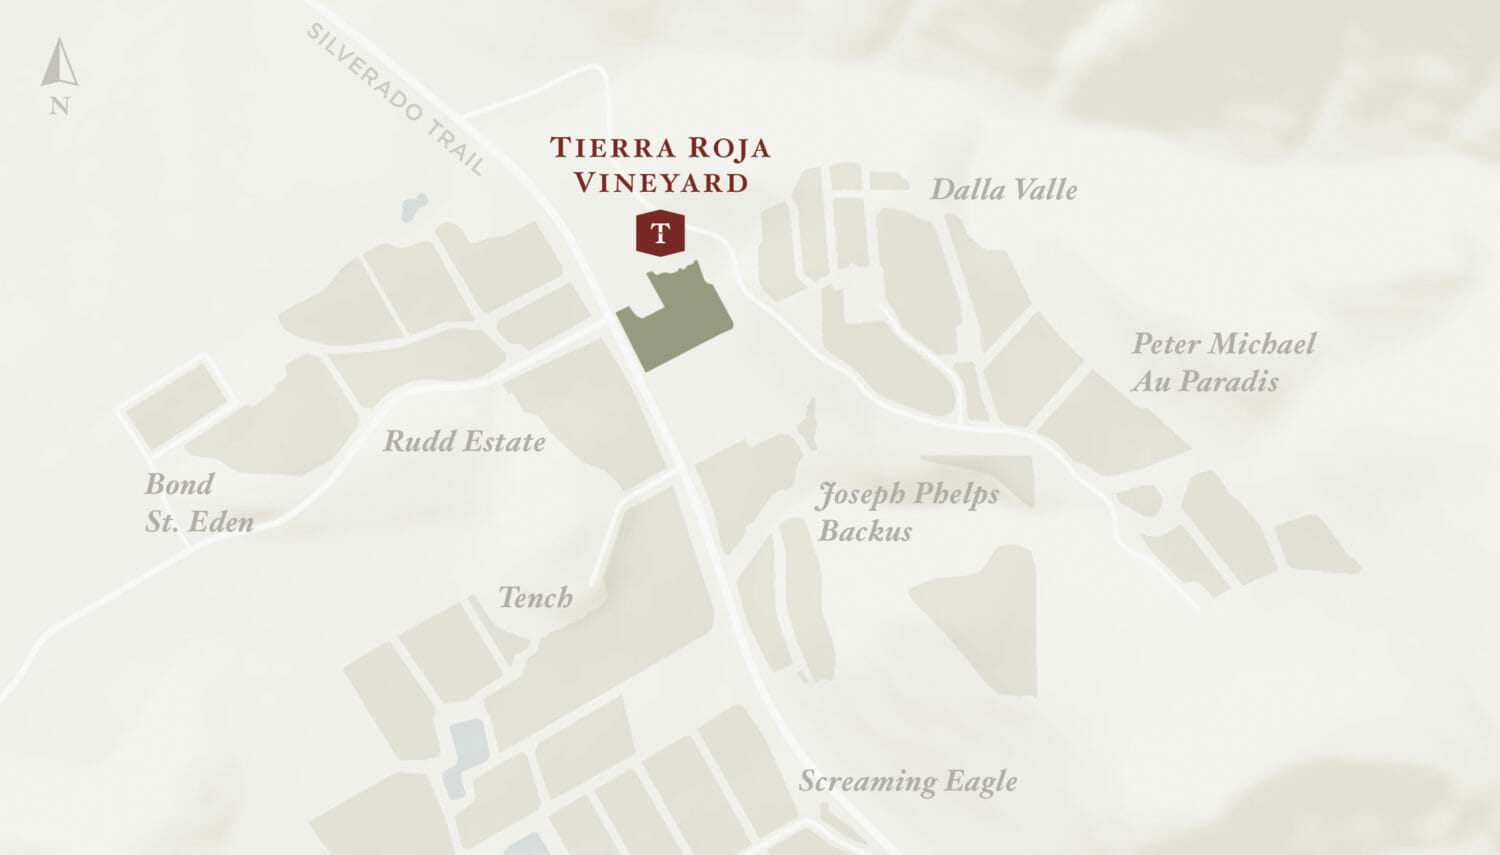 Tierra Roja Vineyard